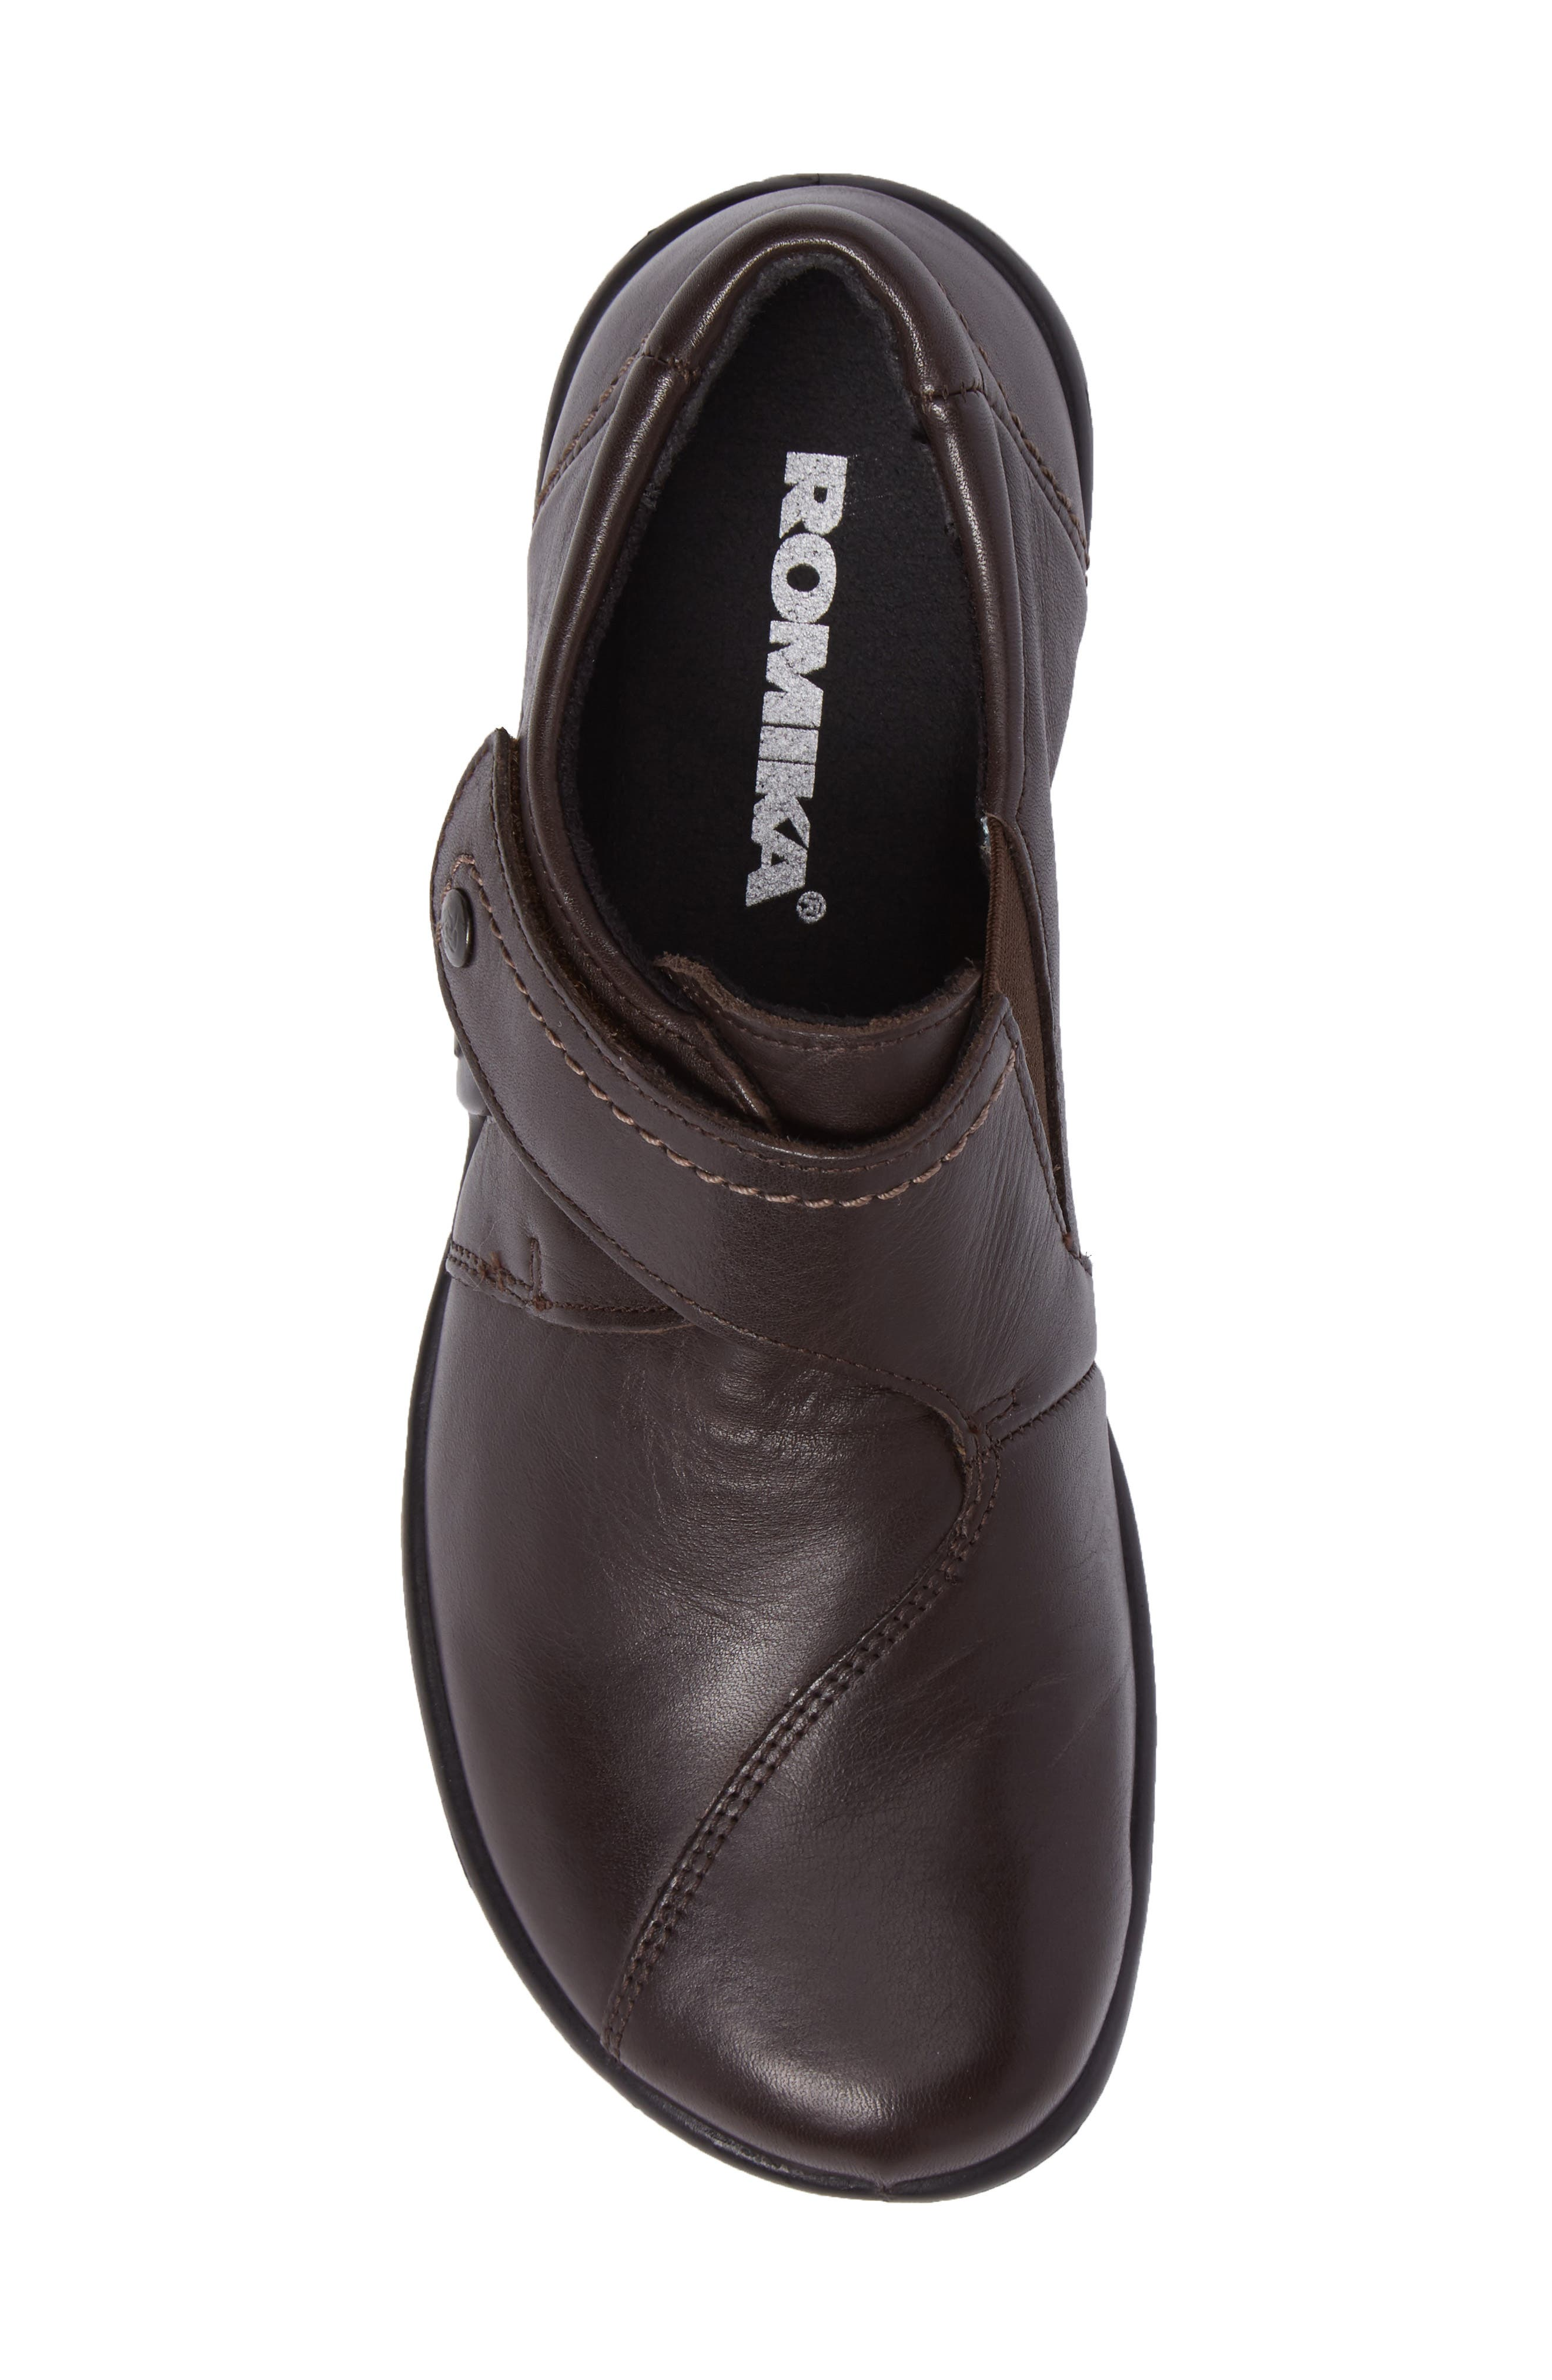 'Maddy 04' Slip-On Flat,                             Alternate thumbnail 5, color,                             Moro Leather